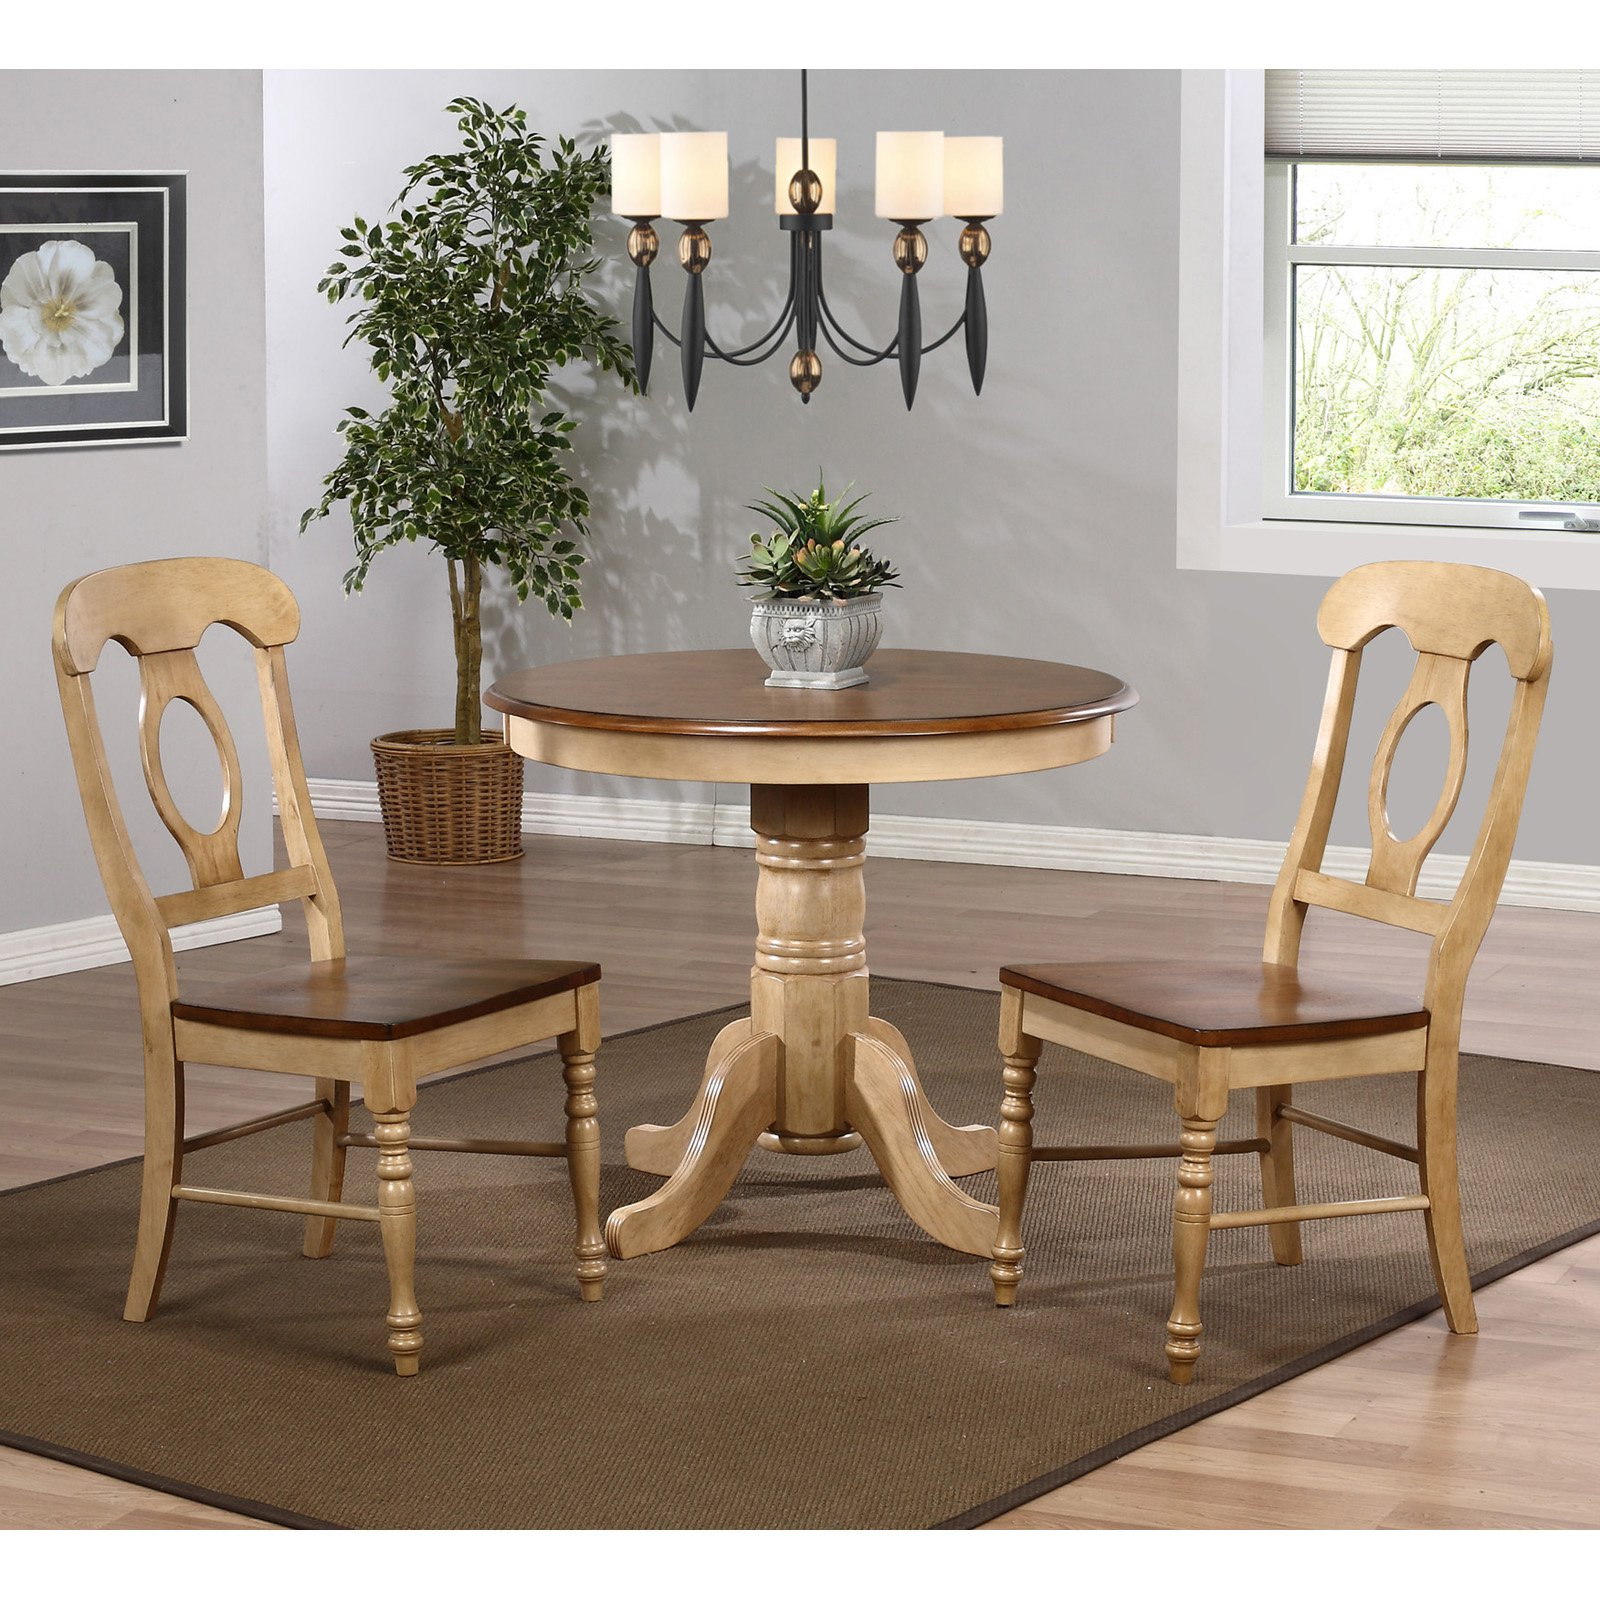 Sunset Trading Brookdale 3 Piece Round Cafe Dining Table Set with Napoleon Chairs